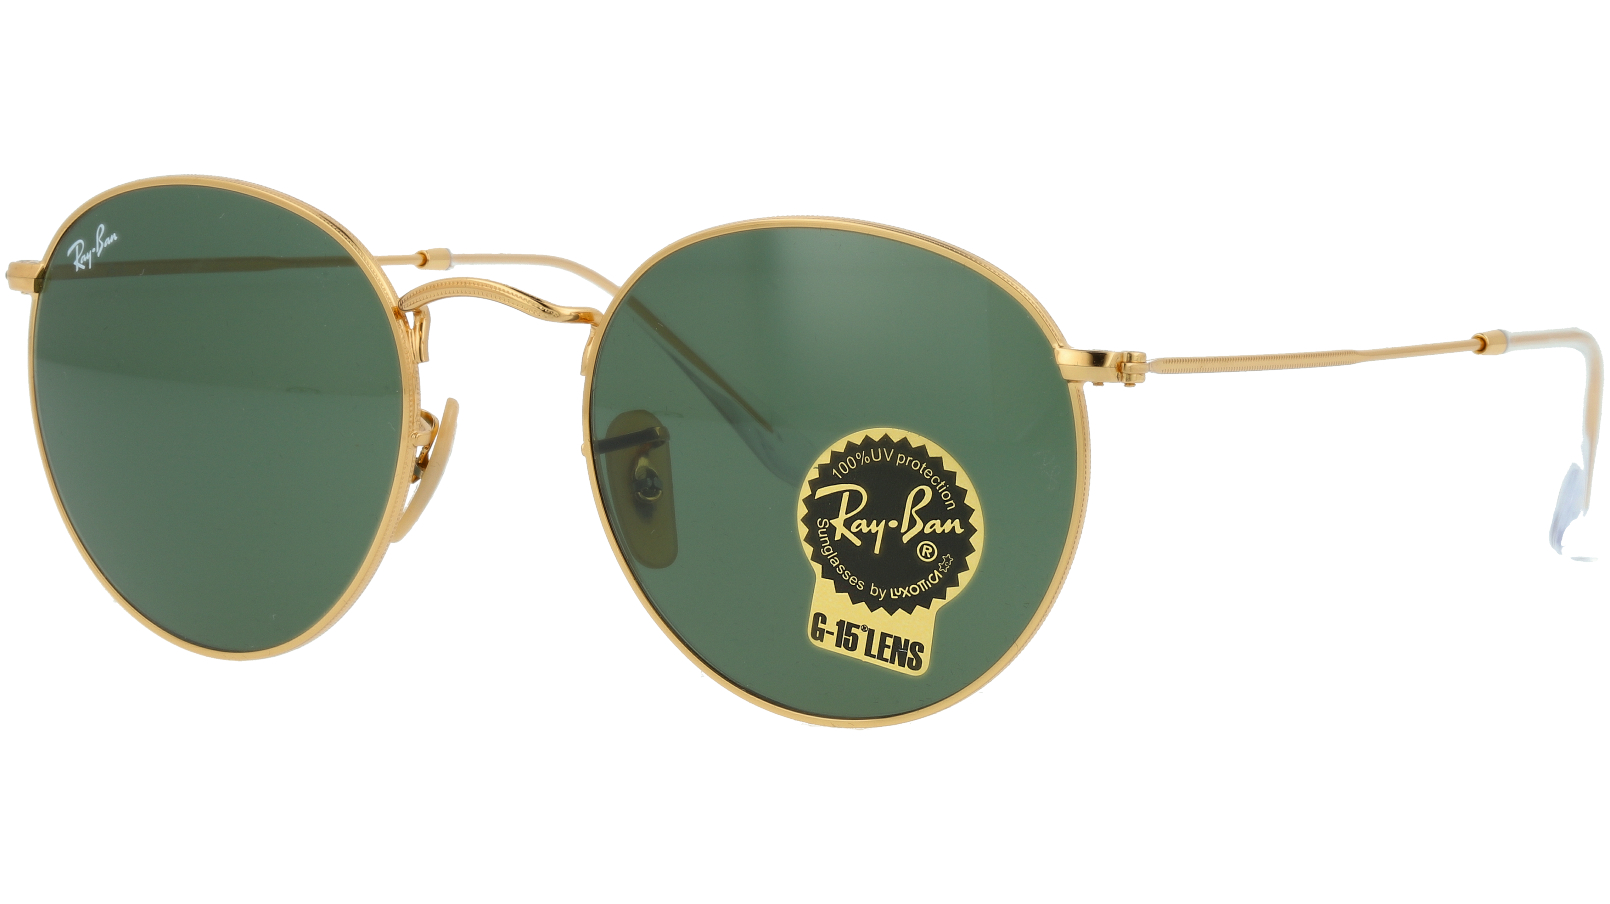 Ray-Ban RB3447 001 53 GOLD Sunglasses